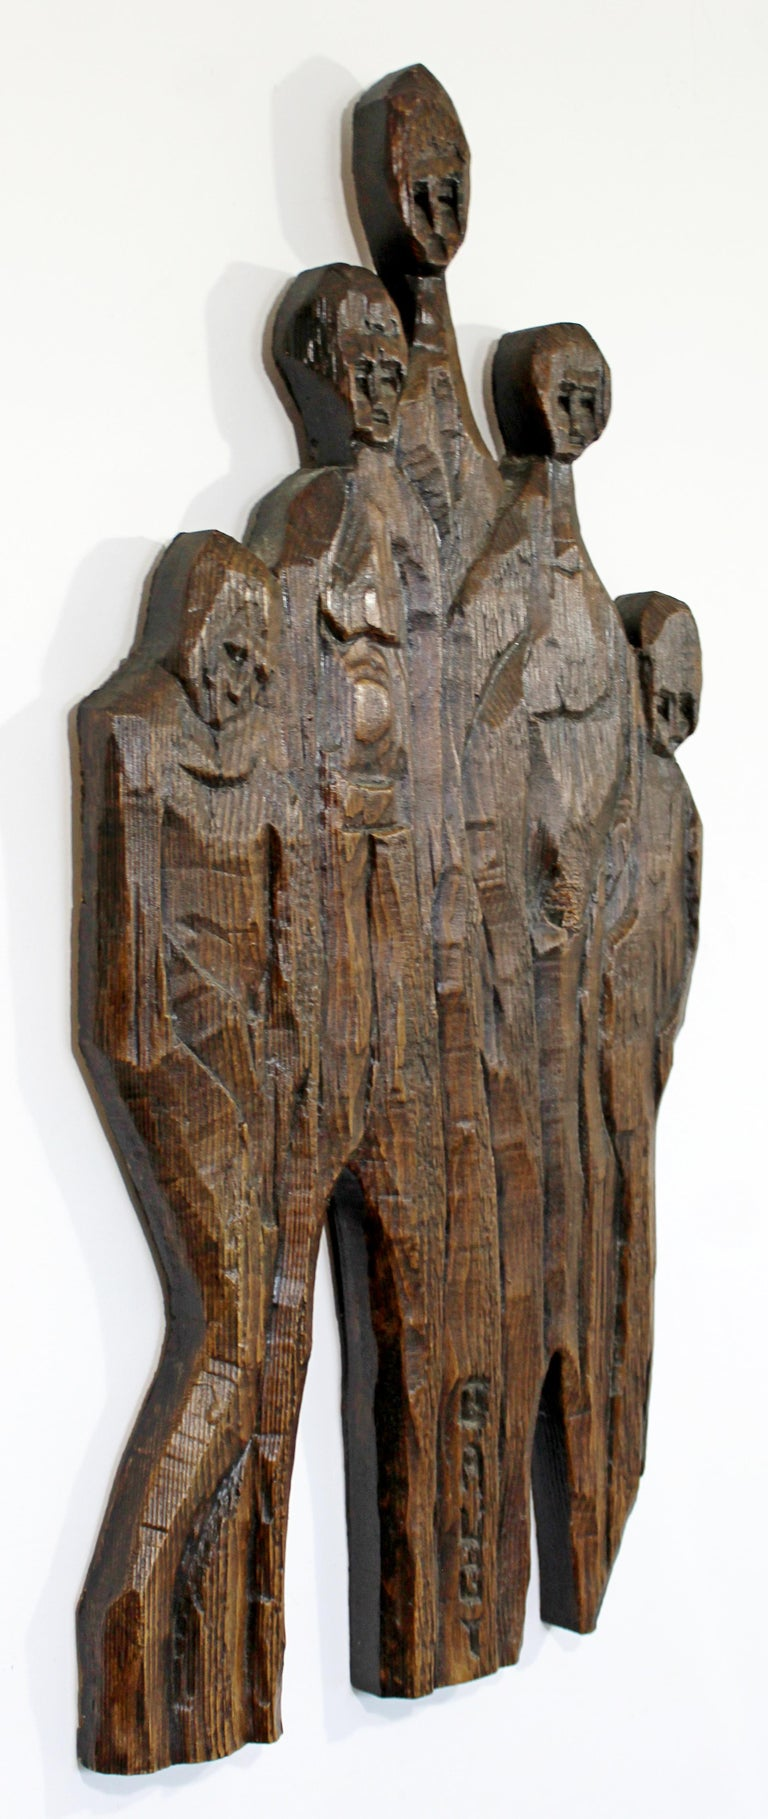 French Mid-Century Modern Wood Wall Art Sculpture Relief Signed Jean Claude Gaugy 1960s For Sale